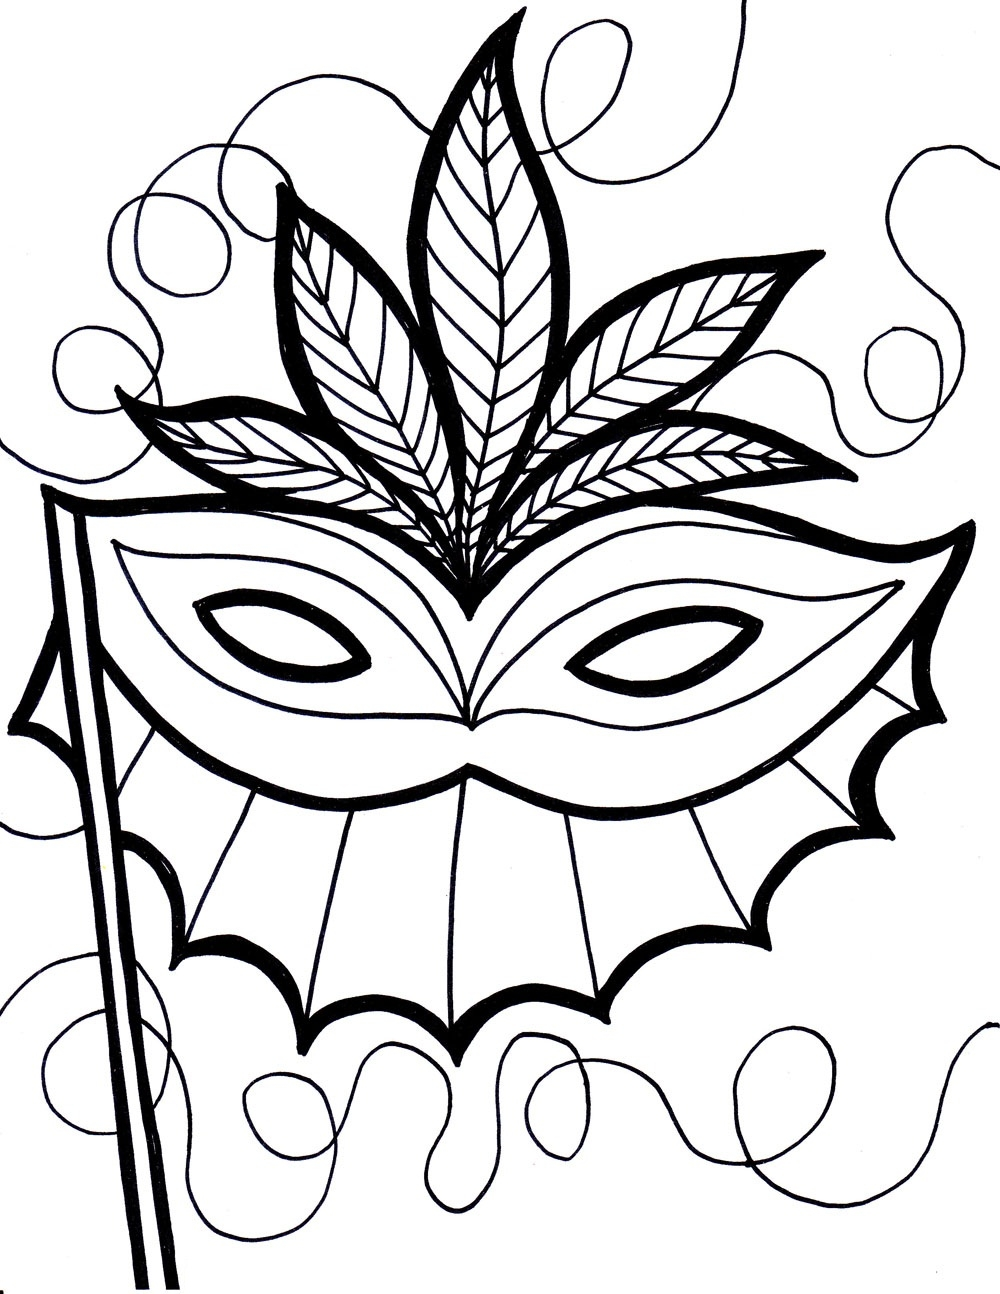 mask coloring pages - printable mask coloring pages